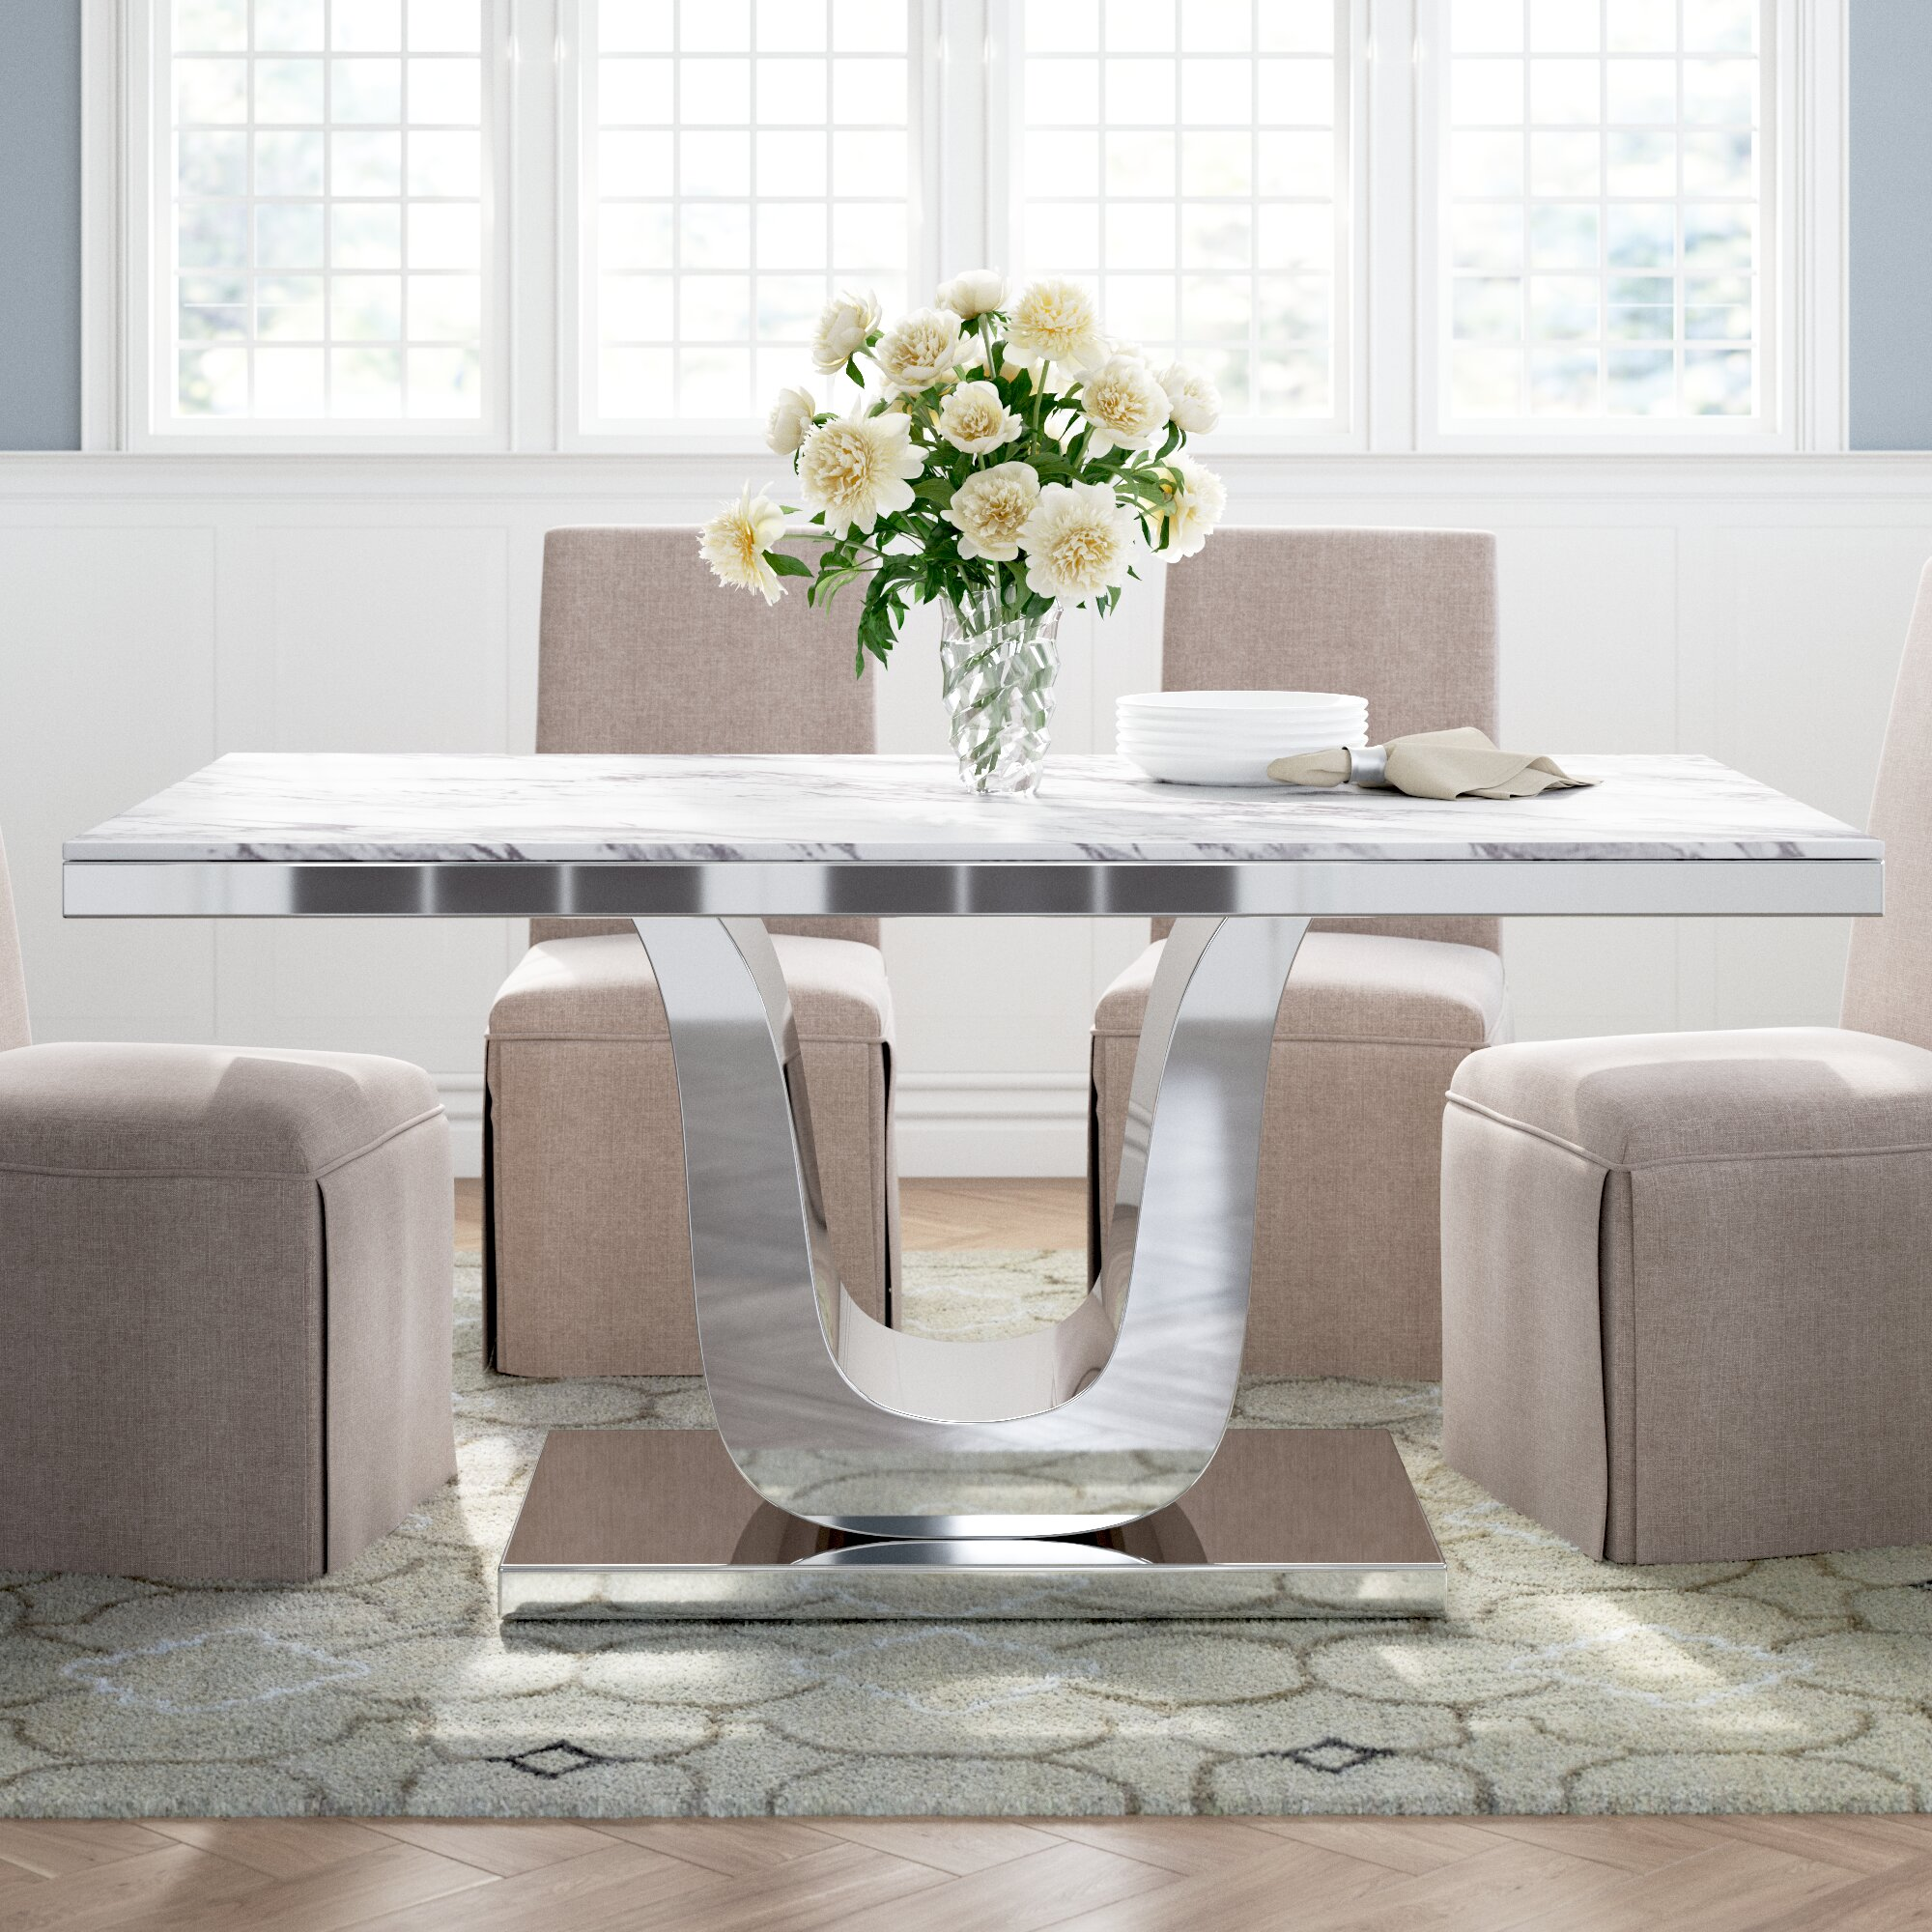 Marble Pedestal Kitchen Dining Tables You Ll Love In 2021 Wayfair